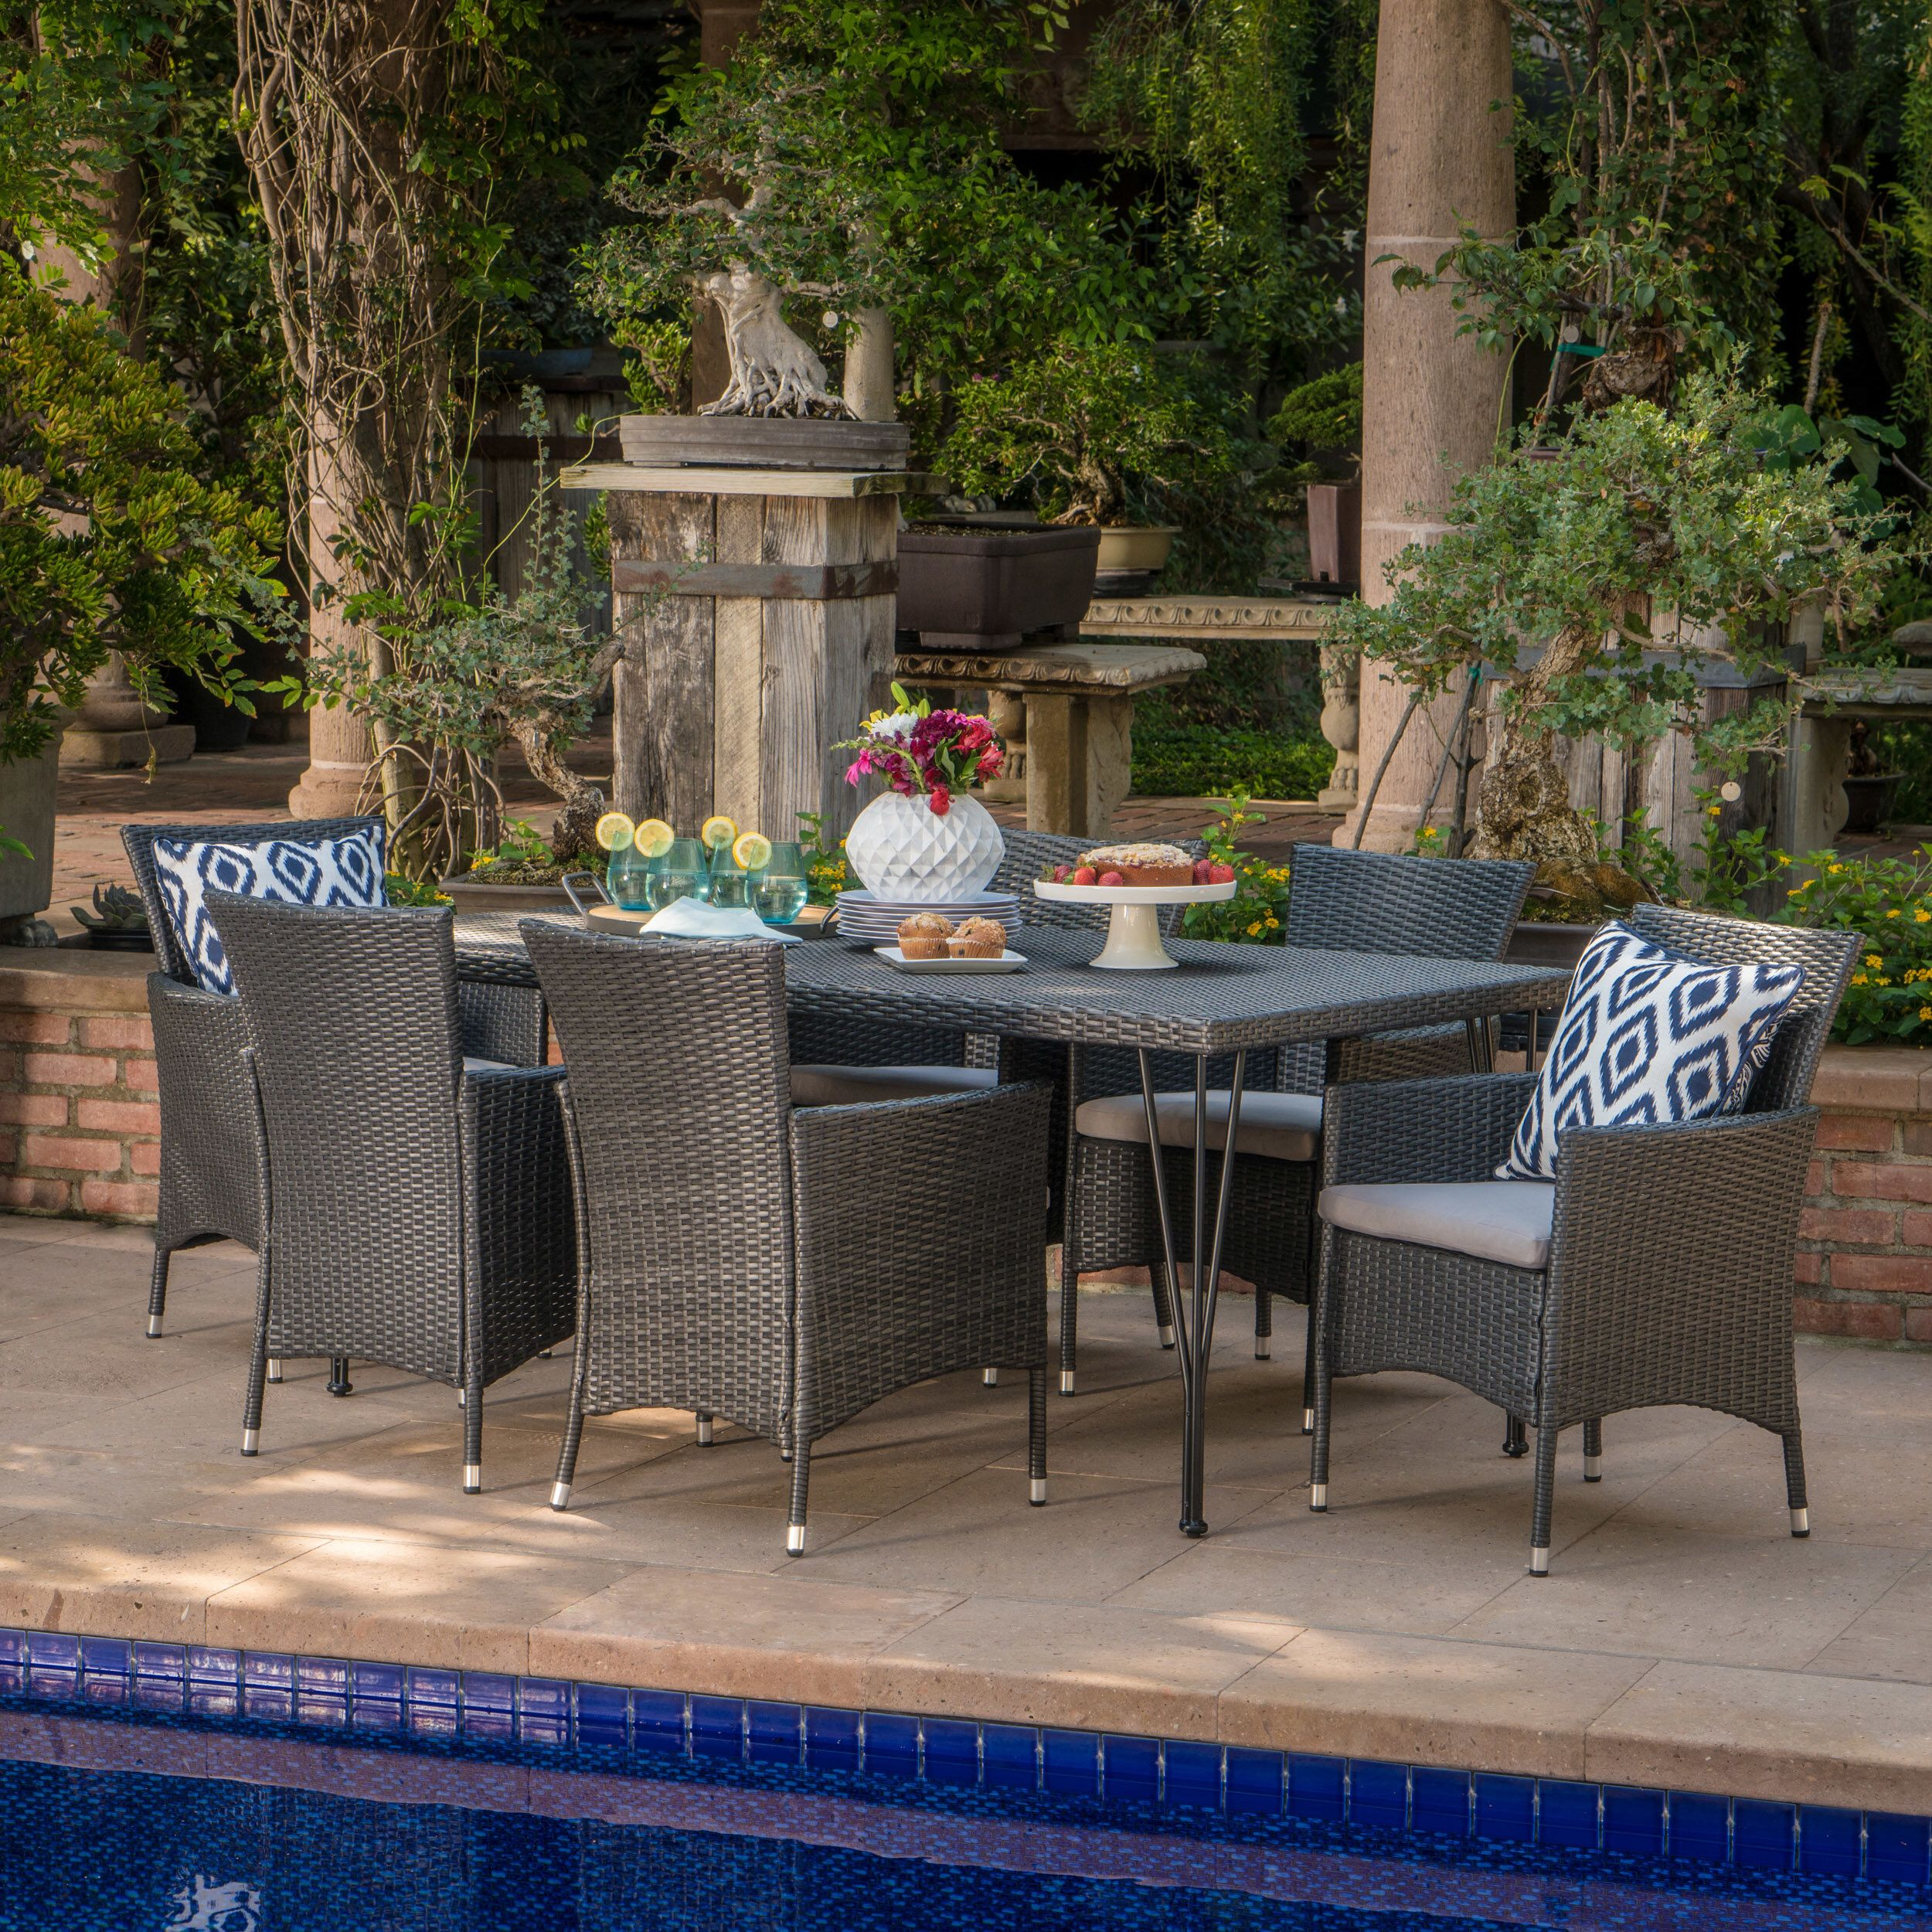 Sensational Alassane Outdoor Wicker 7 Piece Dining Set With Cushions In Cjindustries Chair Design For Home Cjindustriesco